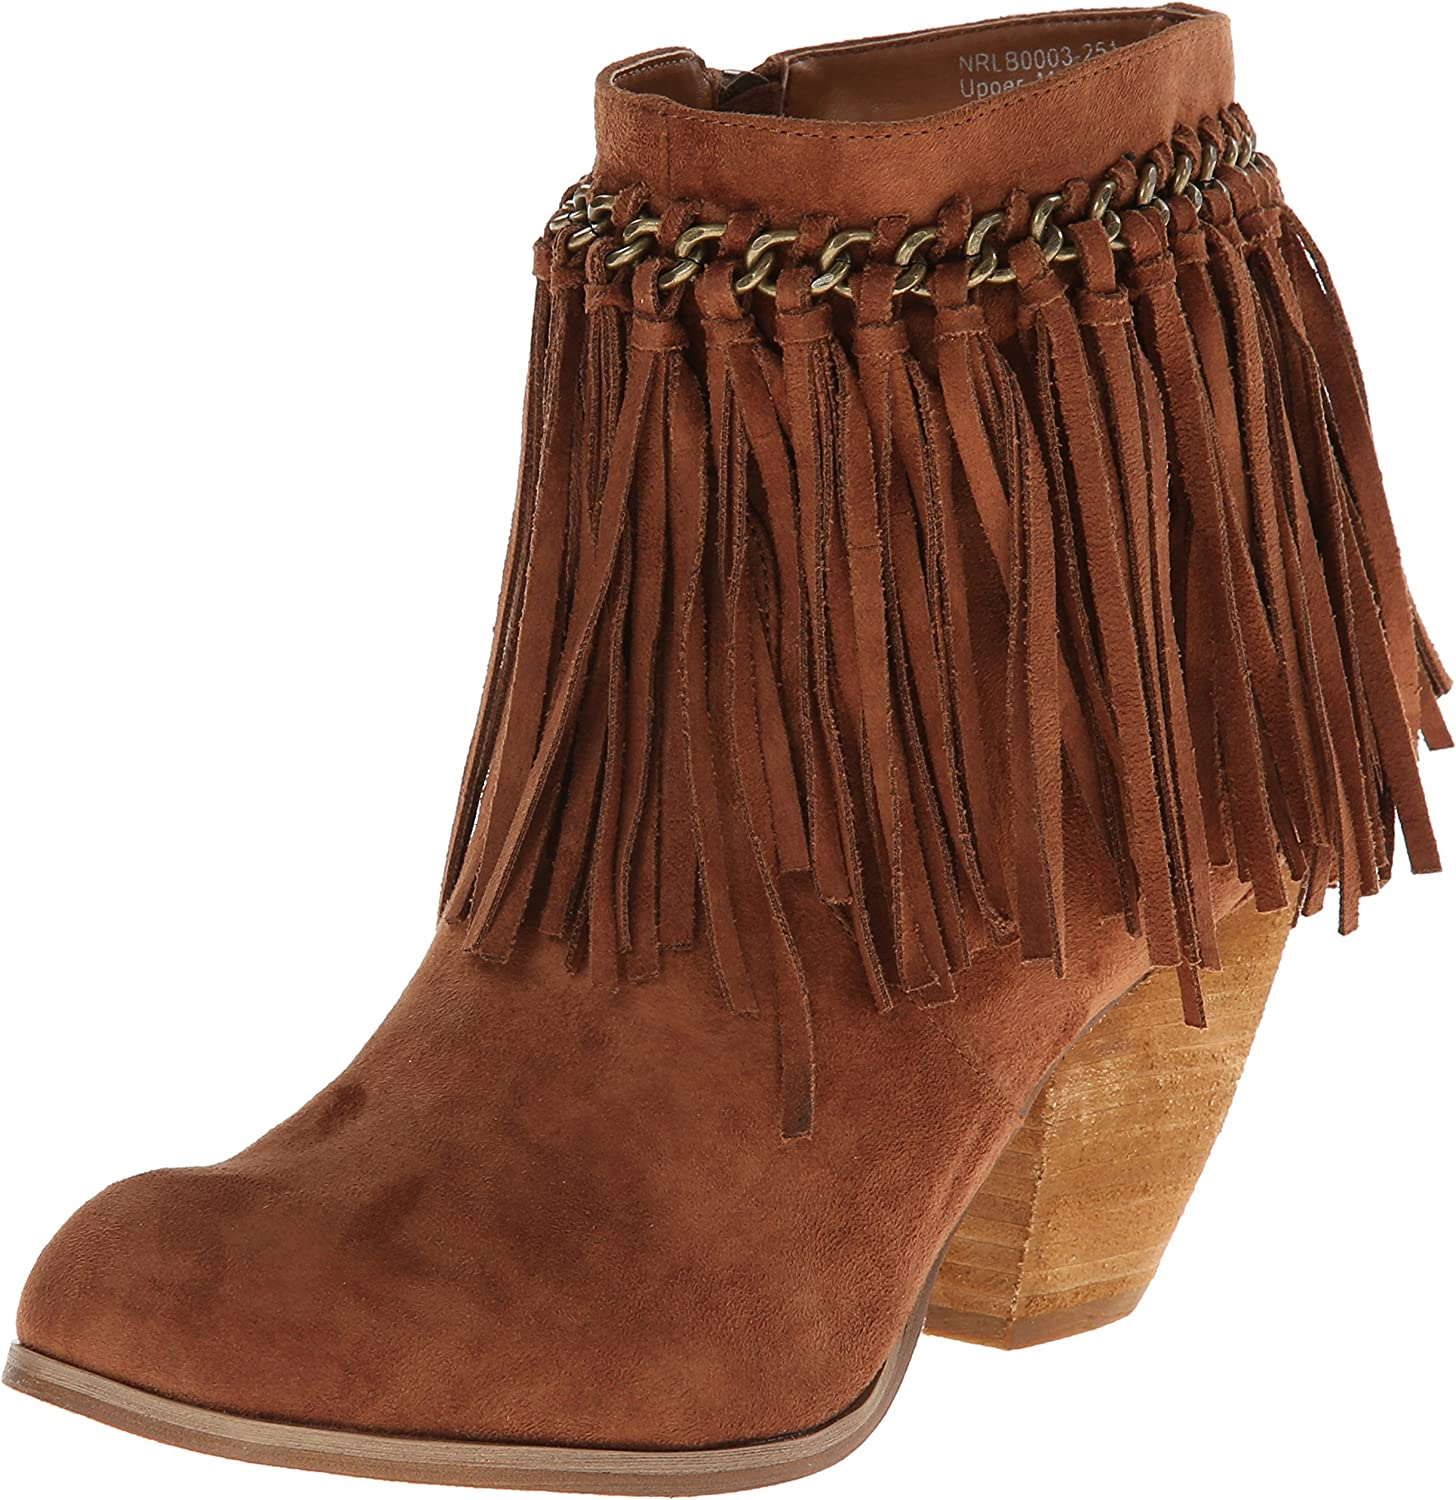 Not Rated Women's Mohegan Fringe Boots